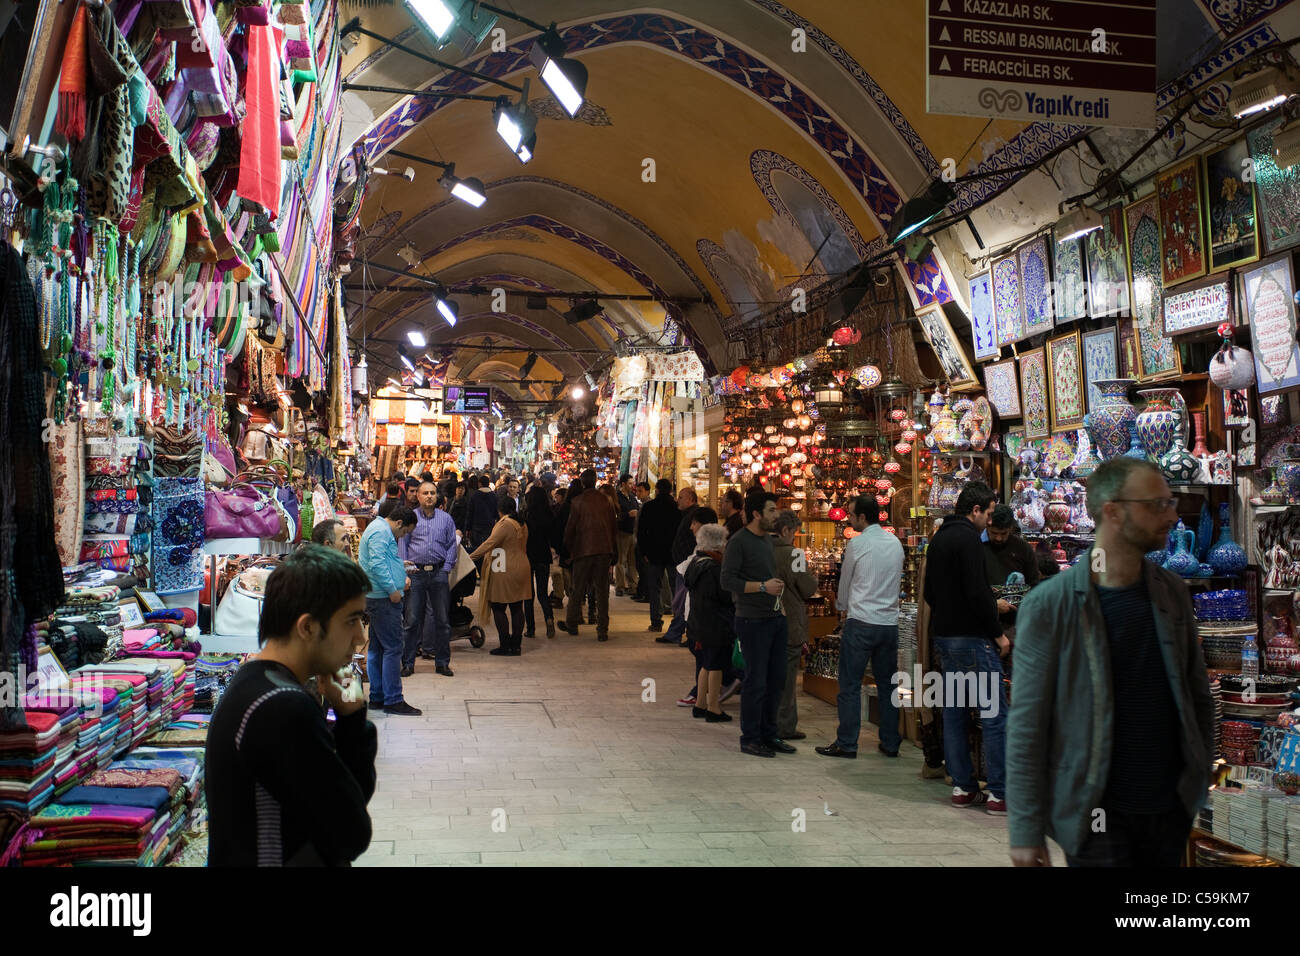 People shopping in the Grand Bazaar. This is one of the largest and oldest covered markets in the world. March 19, - Stock Image